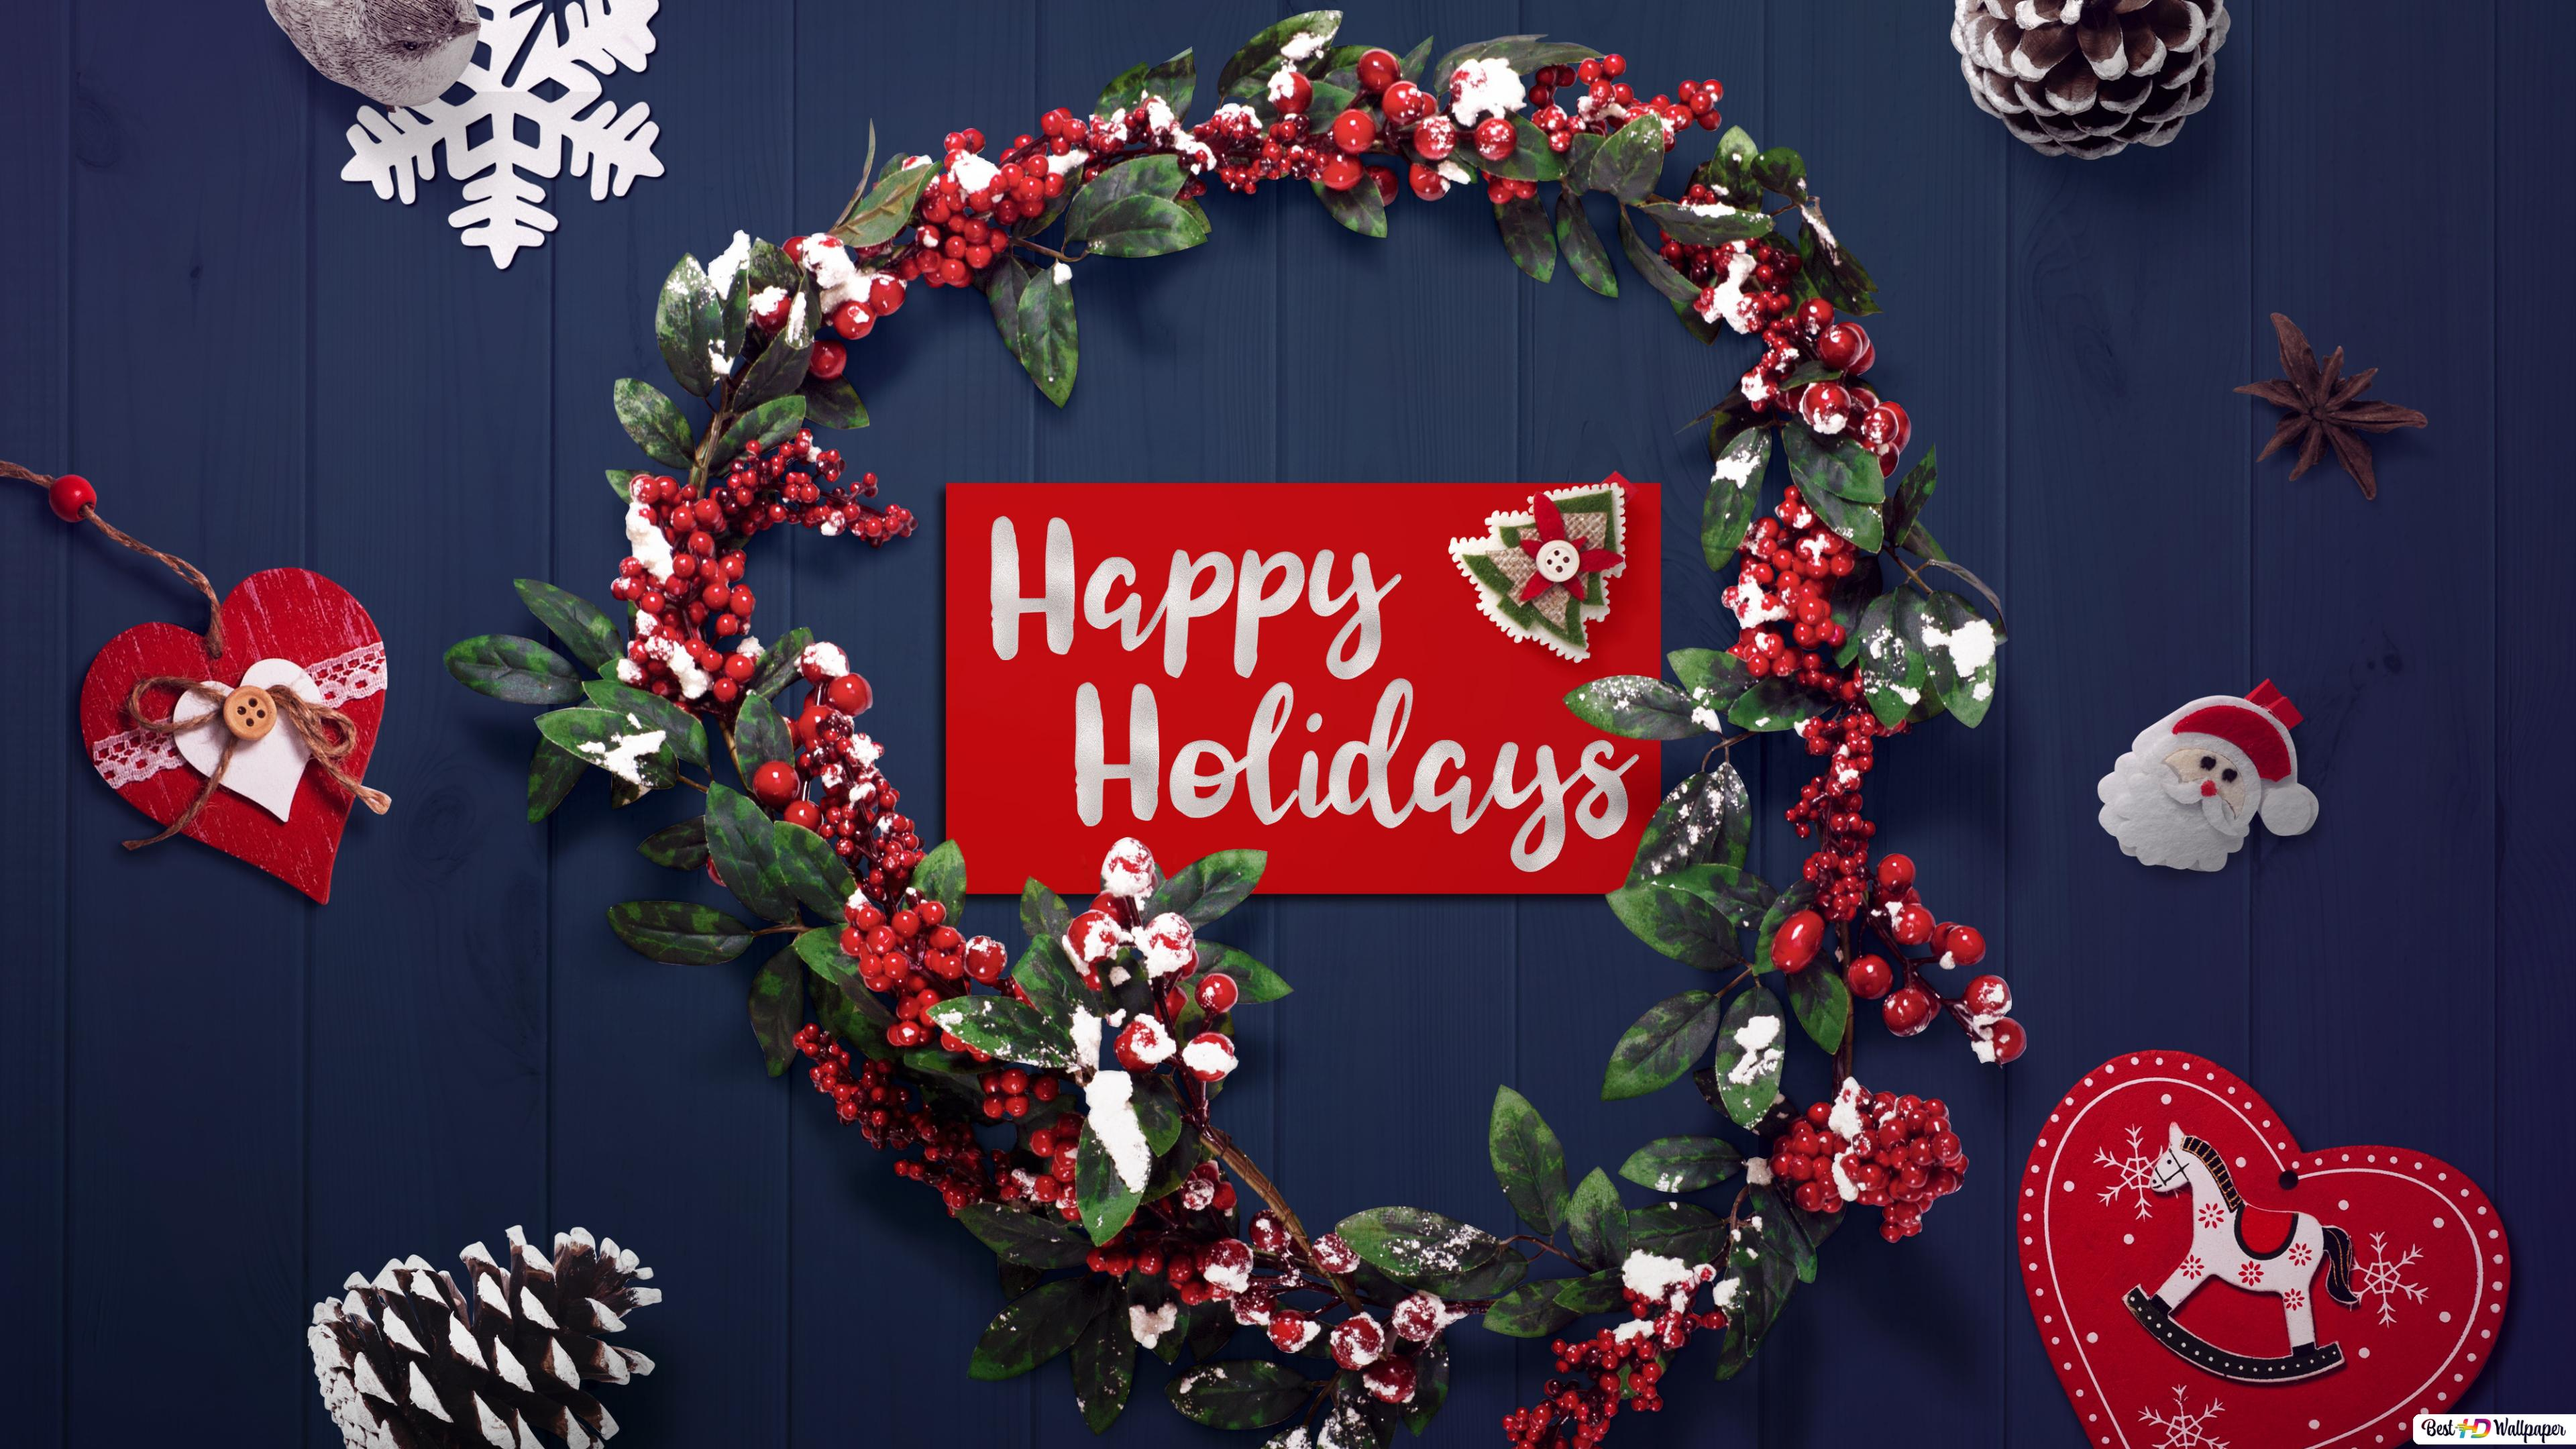 Happy Holidays Greetings With Christmas Decorations Hd Wallpaper Download